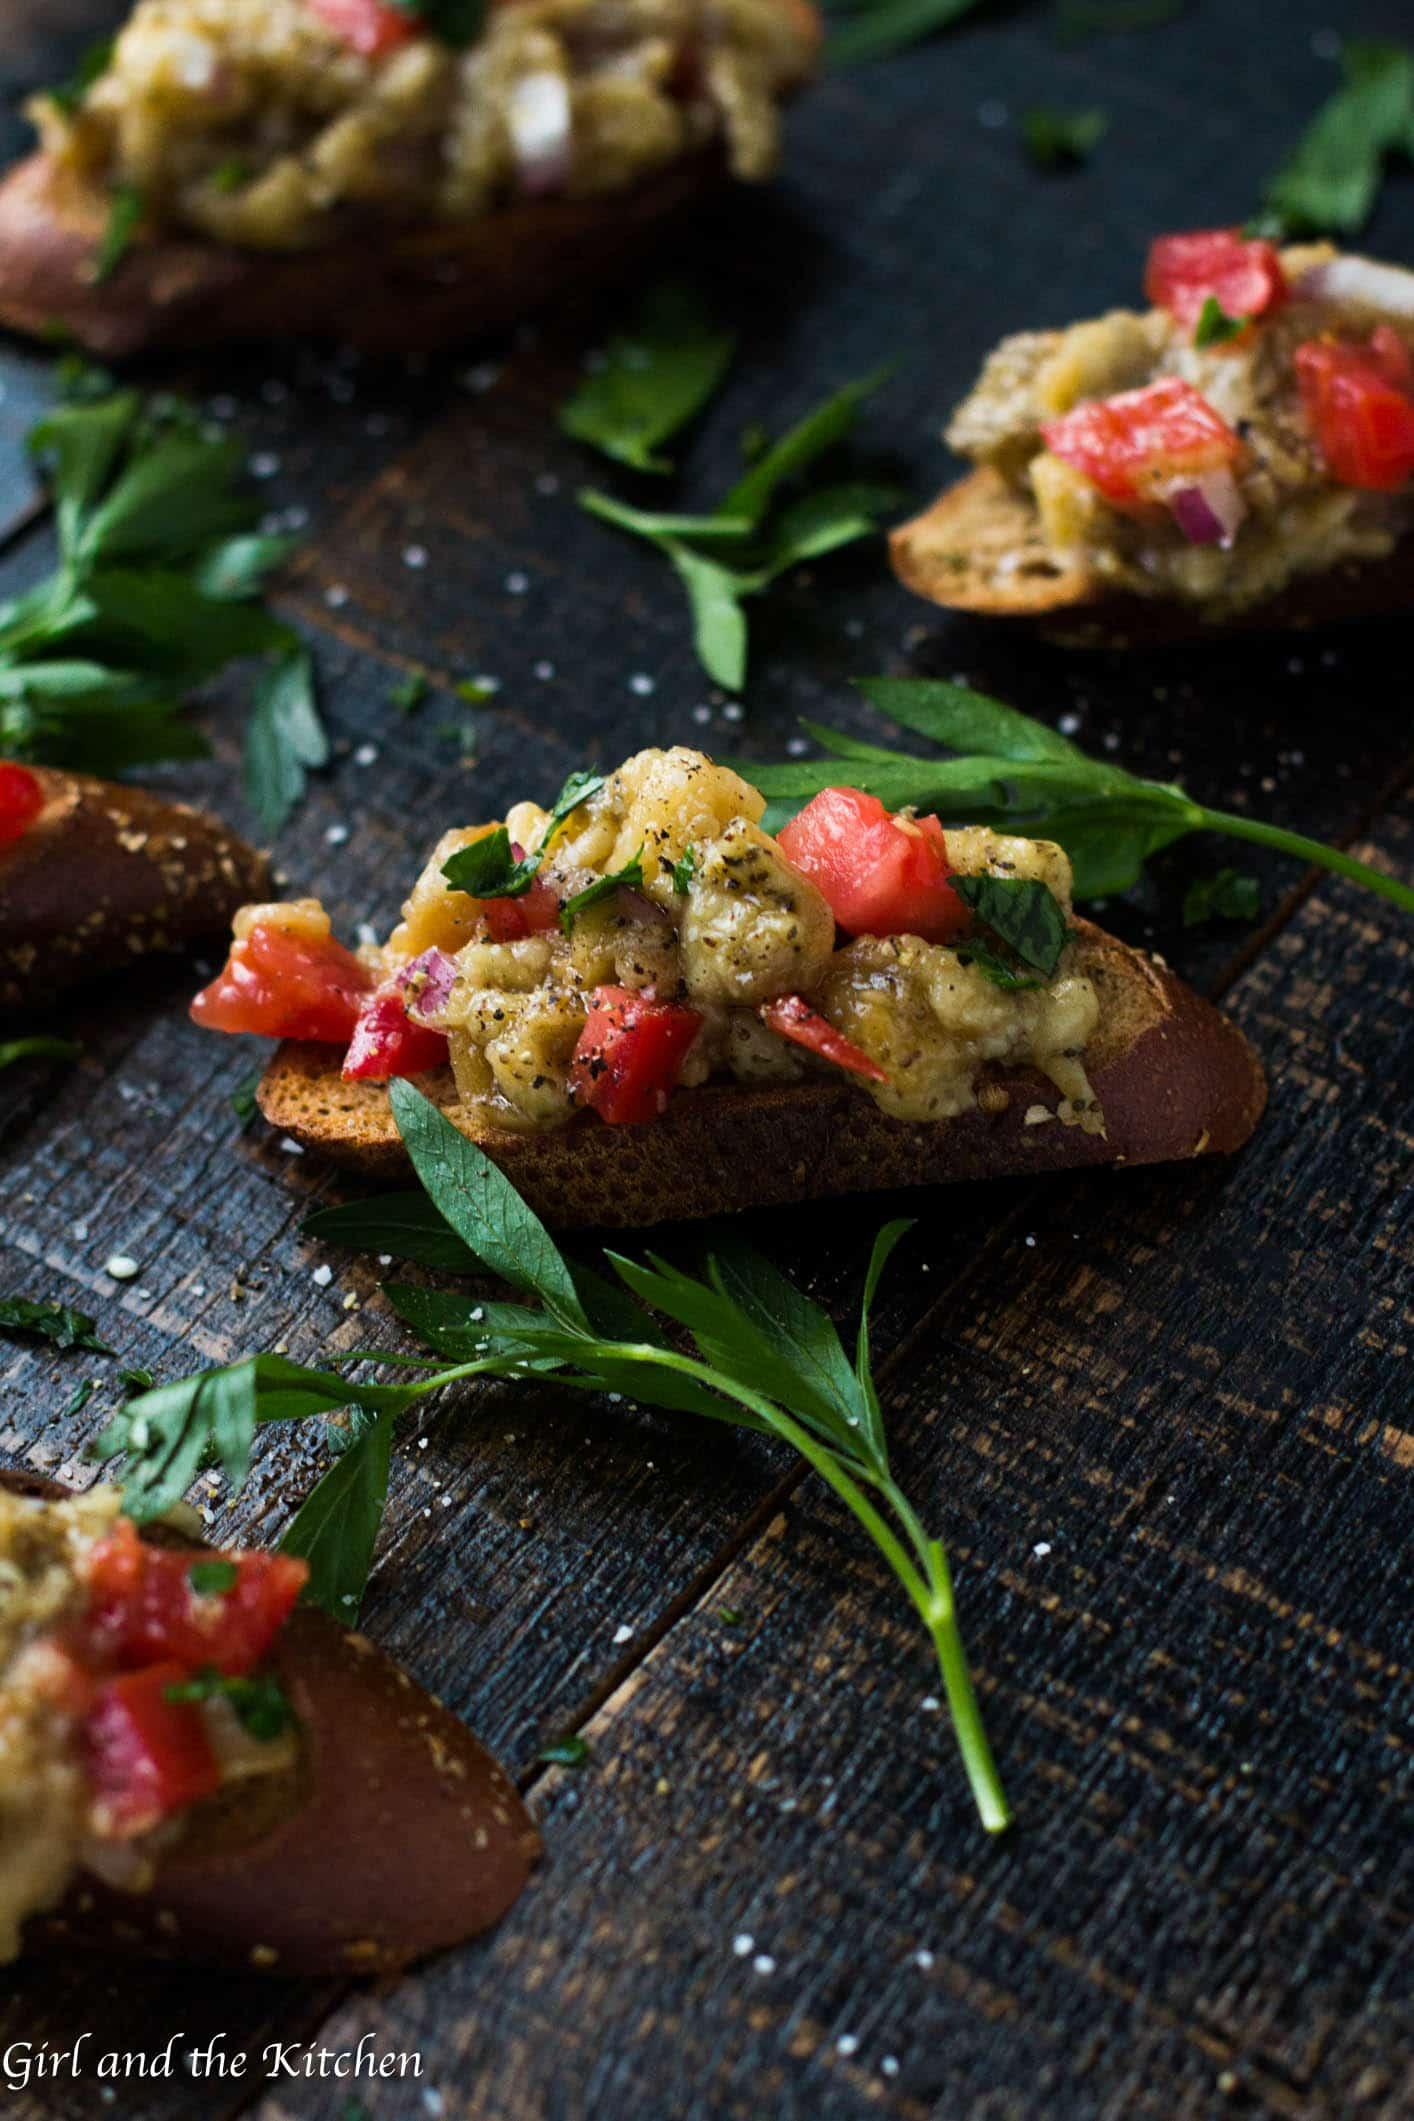 This roasted eggplant salad is a perfect snack or salad for any time! Filled with smoky eggplant and juicy tomatoes, this salad is great spread over some crusty bread or as a side to any meal!